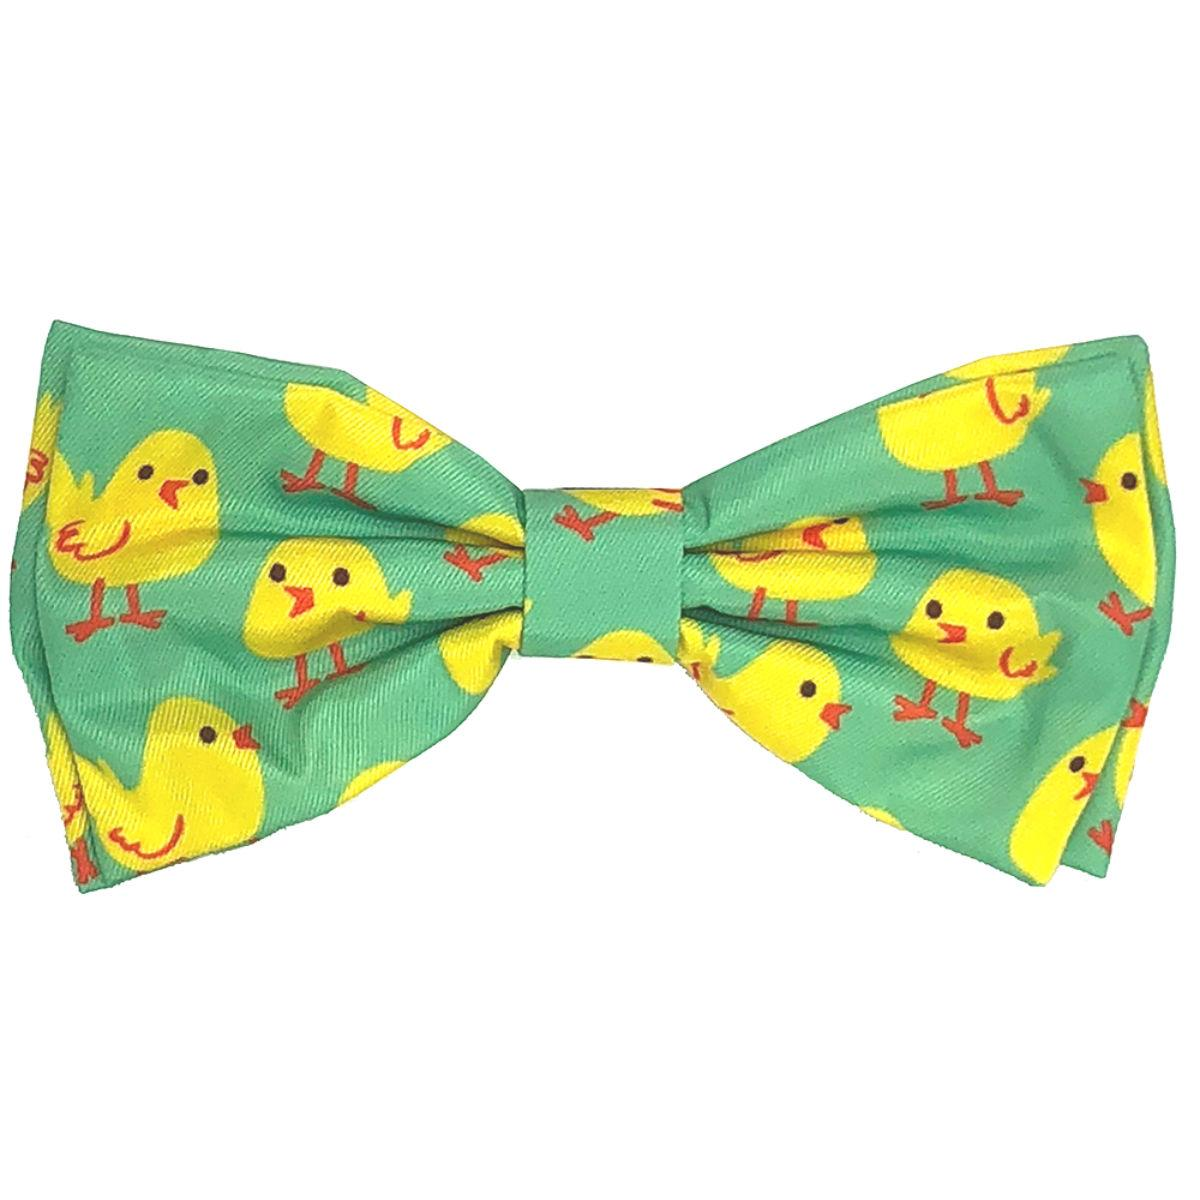 Huxley & Kent Dog and Cat Bow Tie Collar Attachment - Chicks